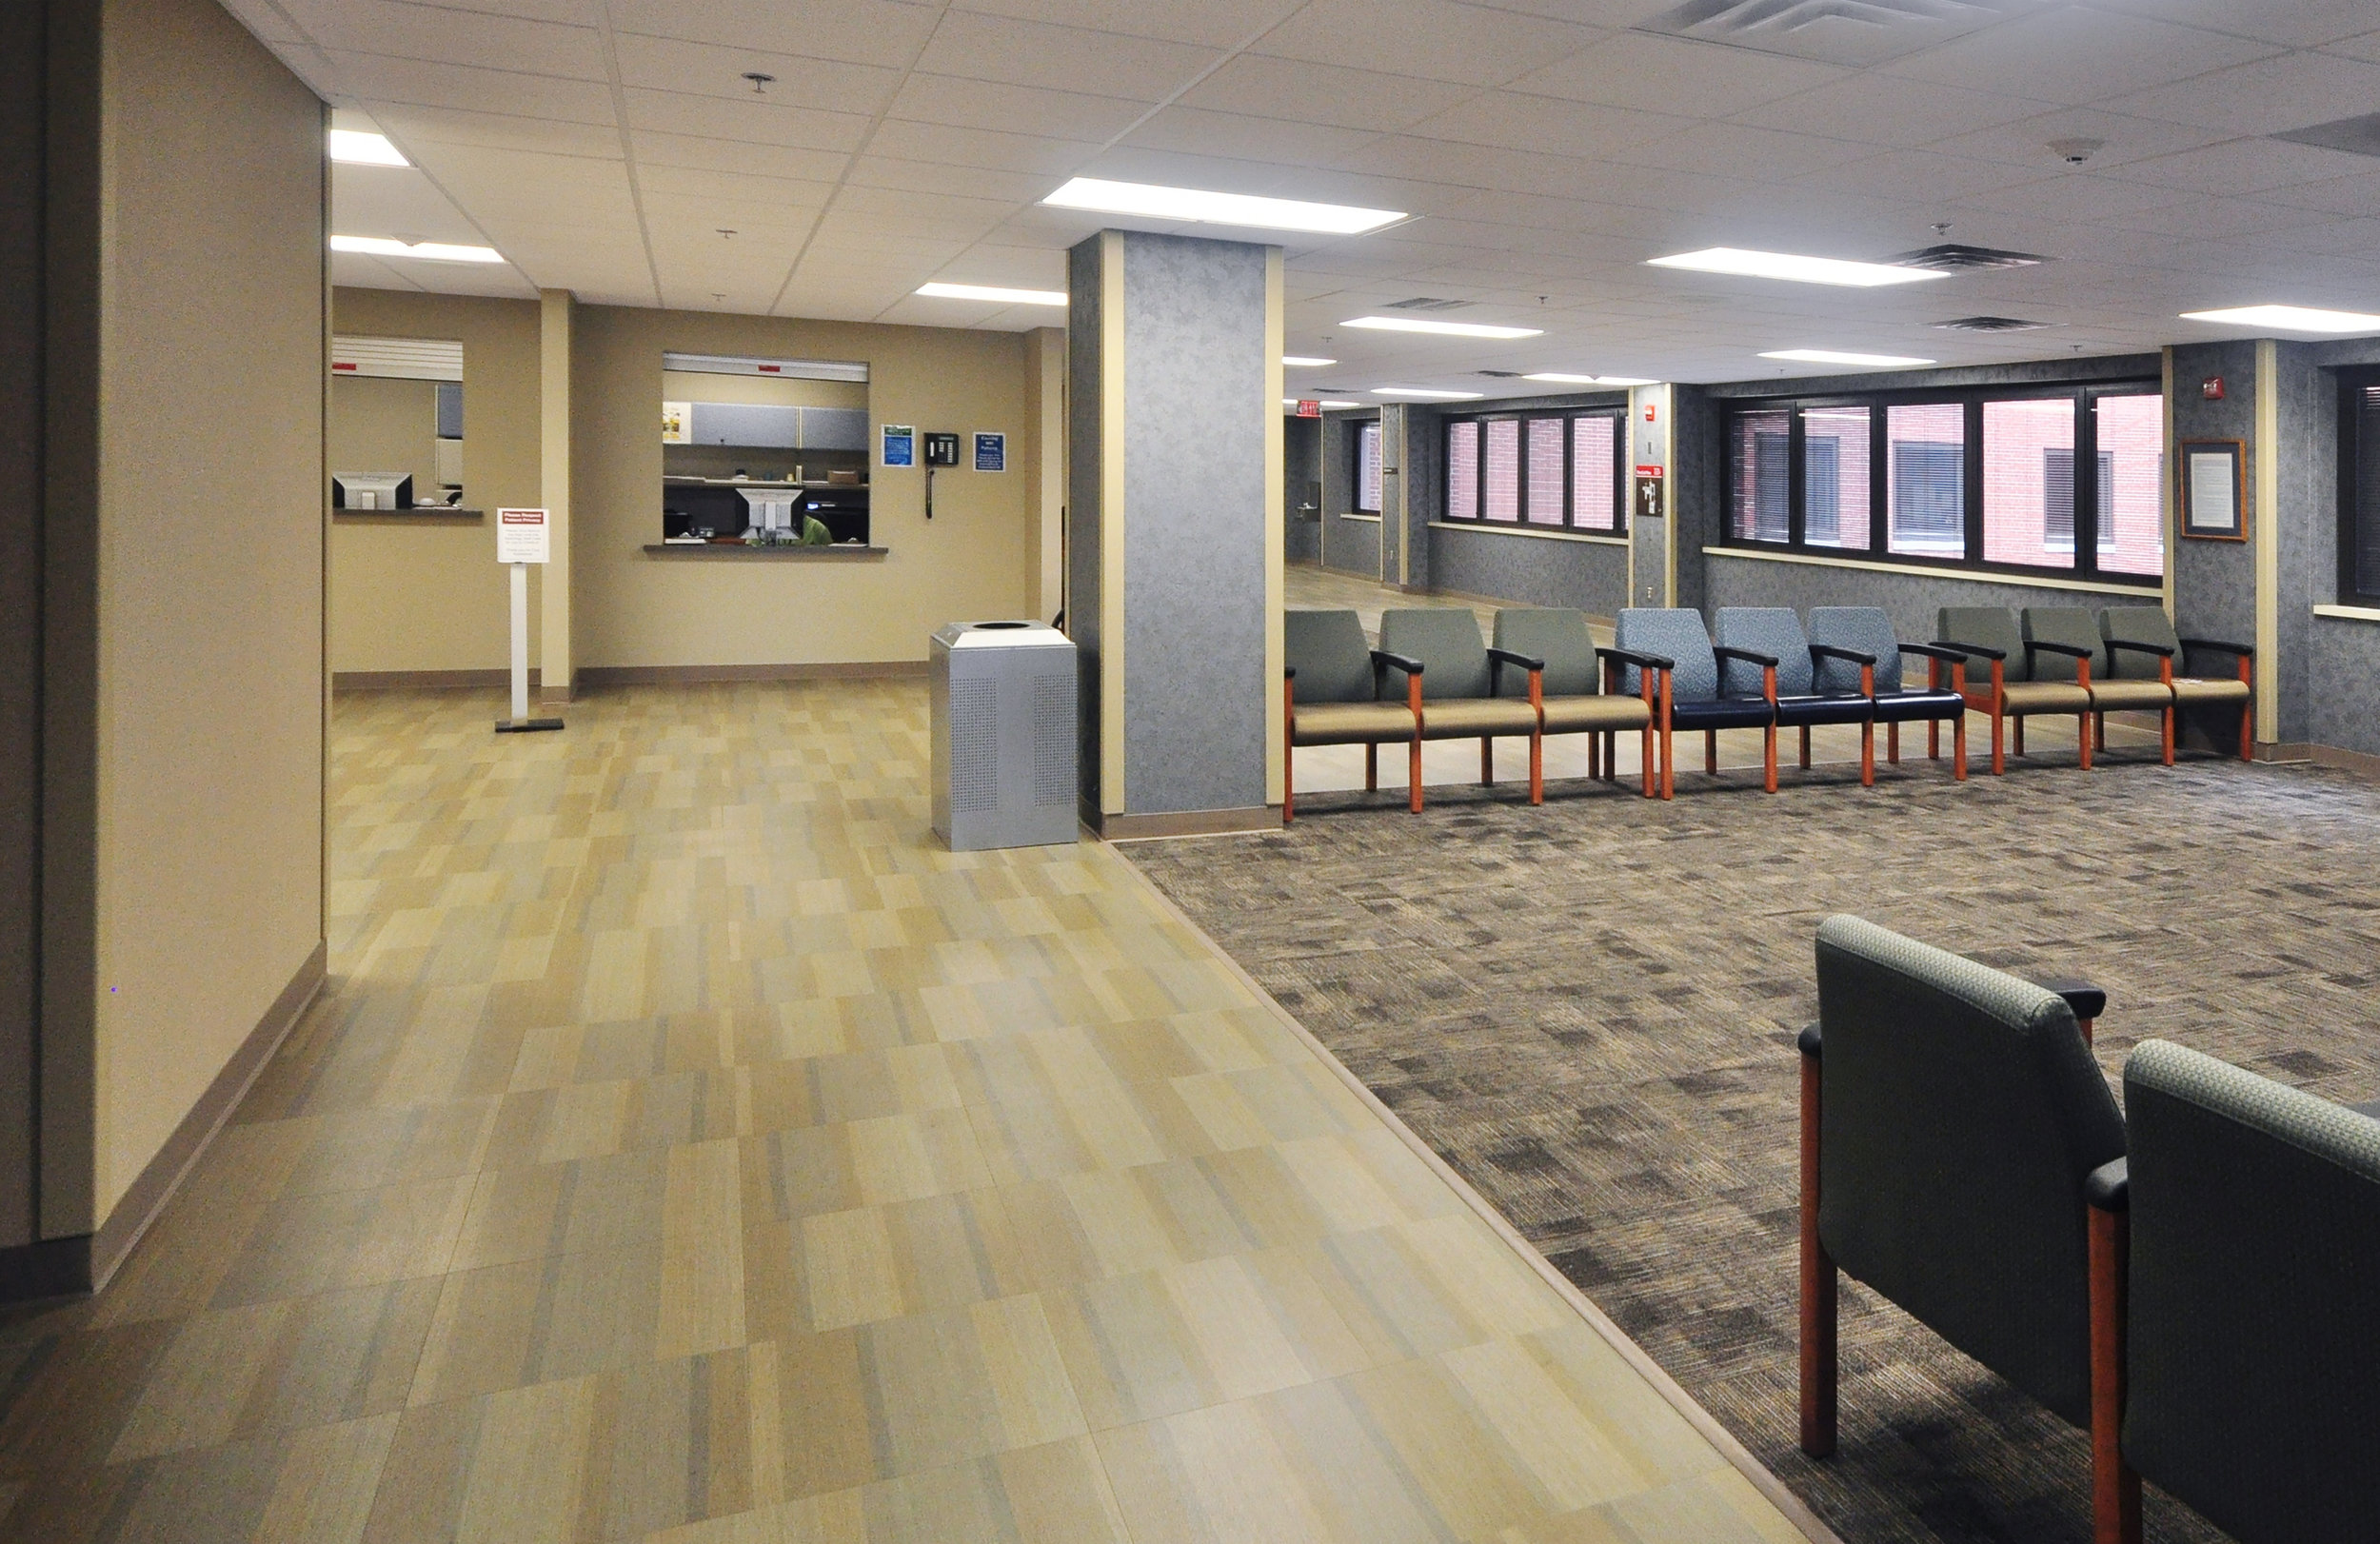 01 OKVAMC INTERIOR - waiting area.jpg